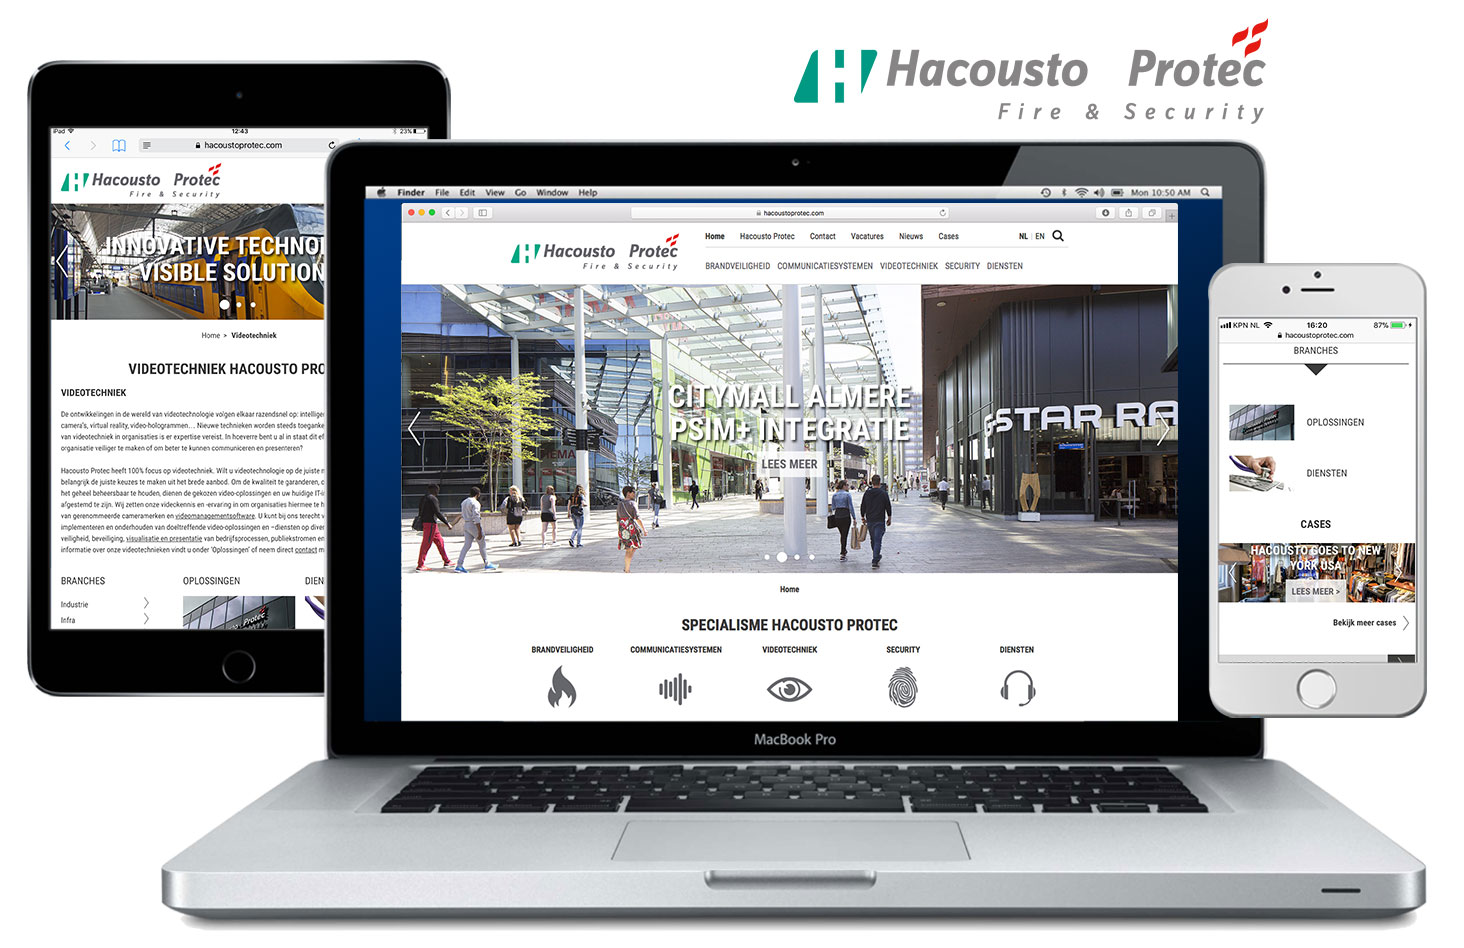 Hacousto-protec-website-macbook-ipad-iphone